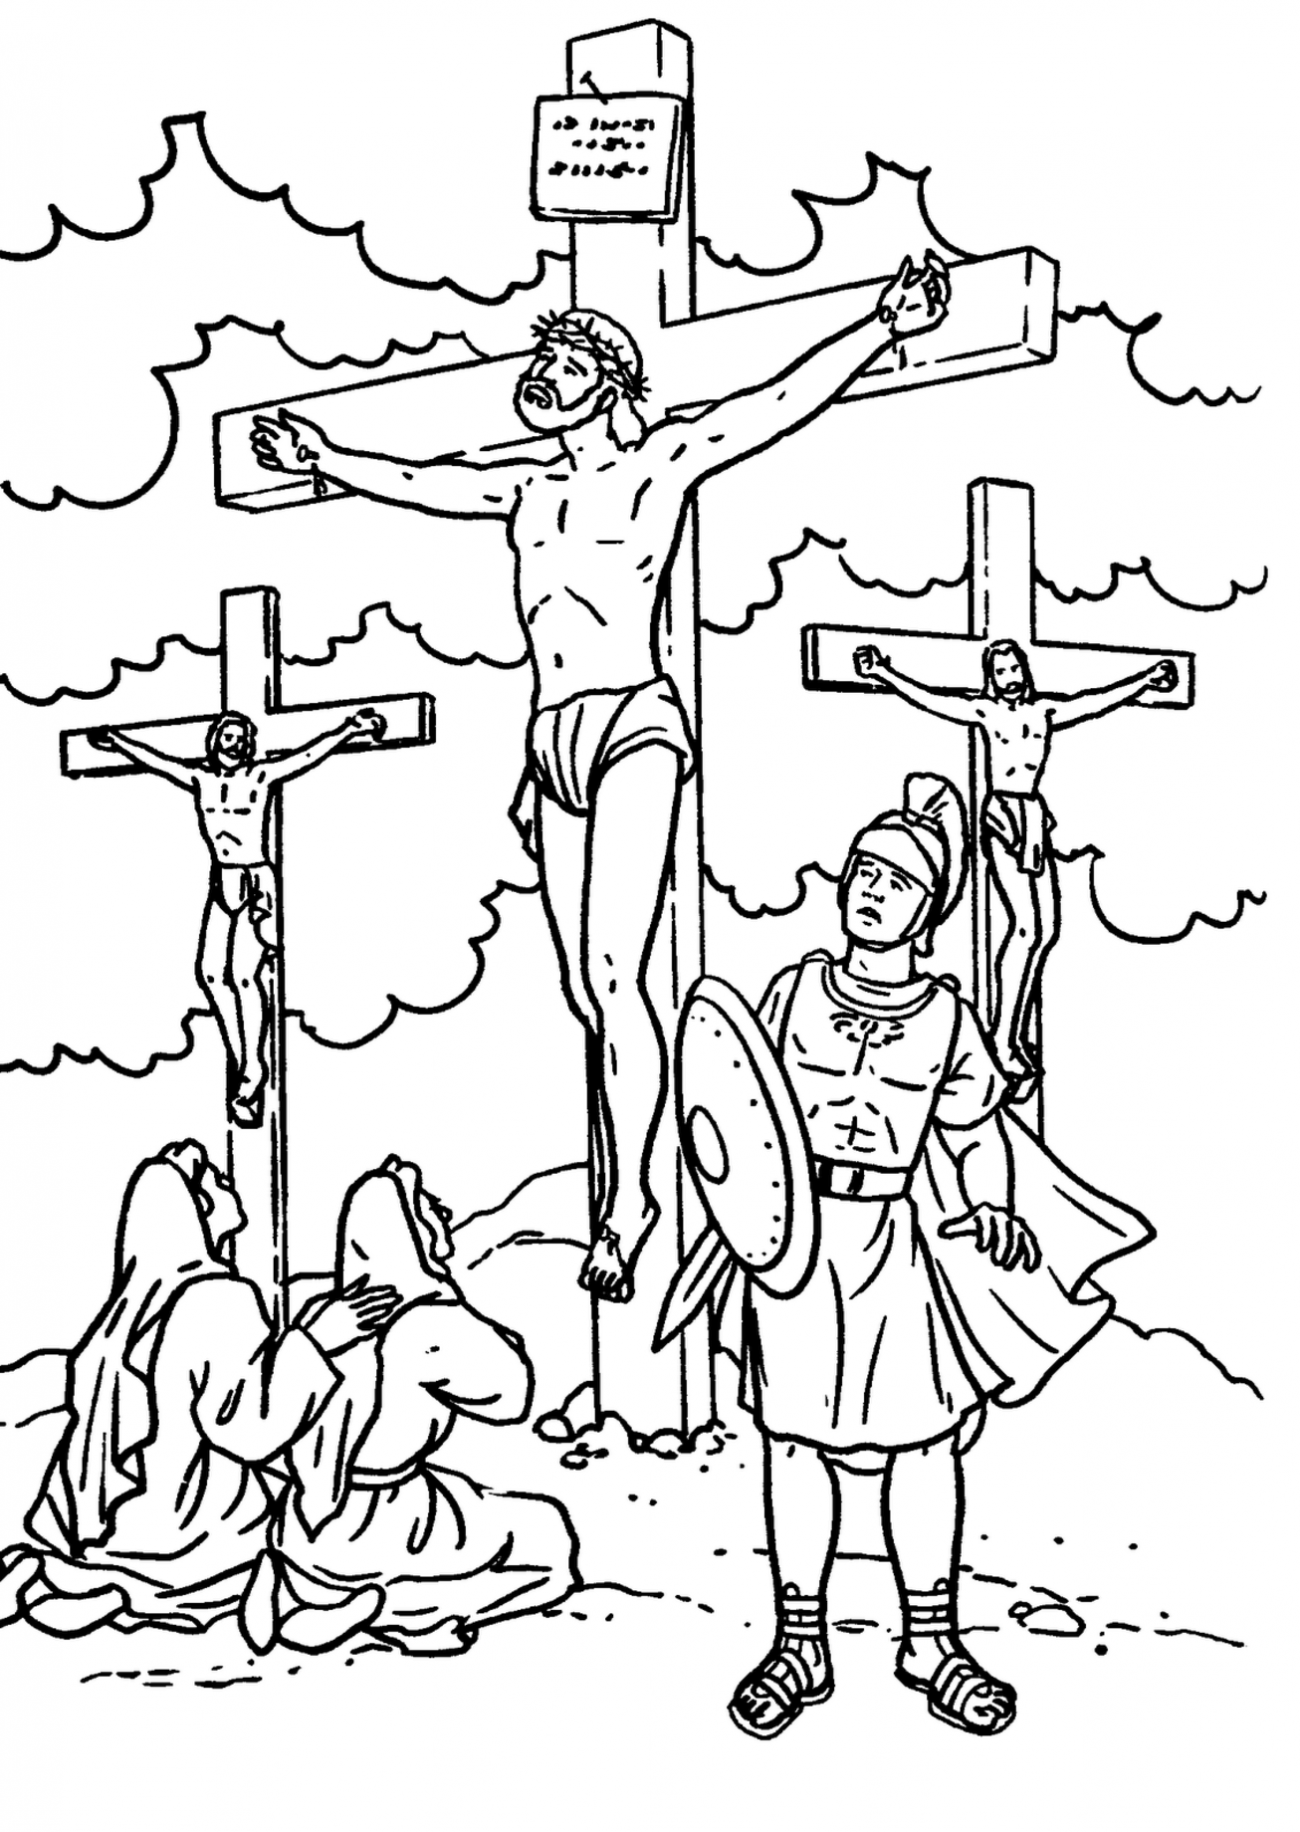 Jesus On The Cross Coloring Page Google Search Jesus Coloring Pages Bible Coloring Pages Cross Coloring Page